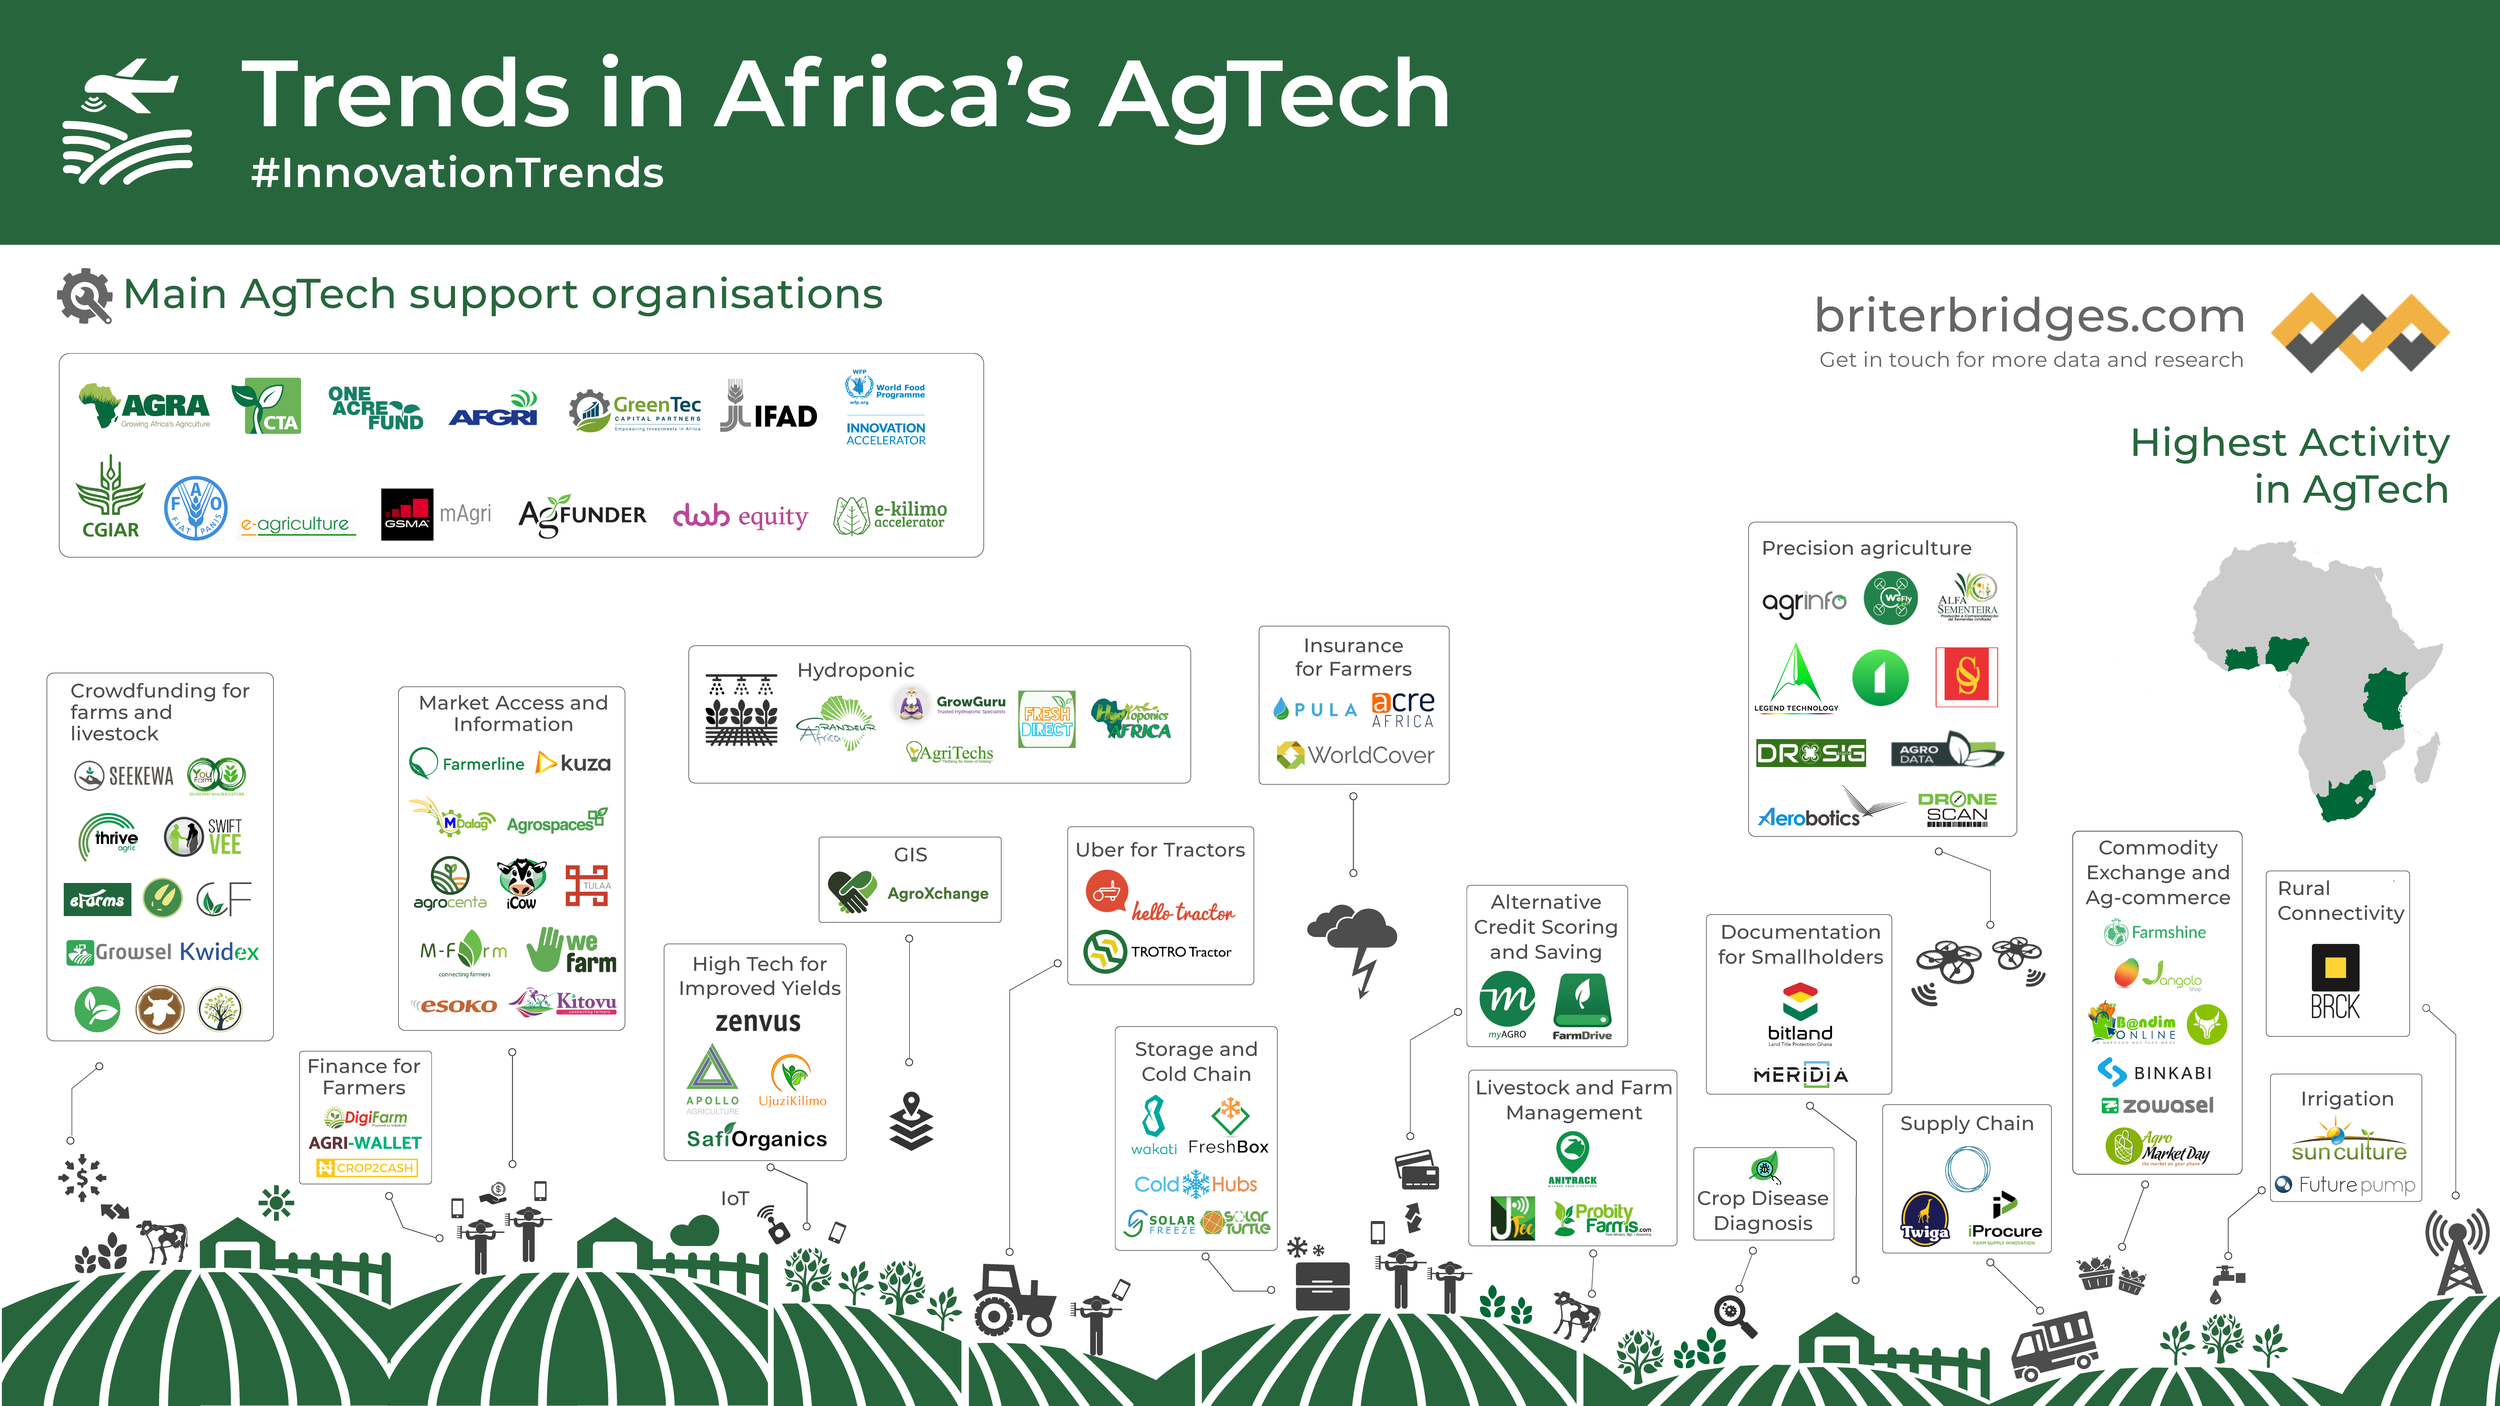 Trends in the AgTech sector across Africa